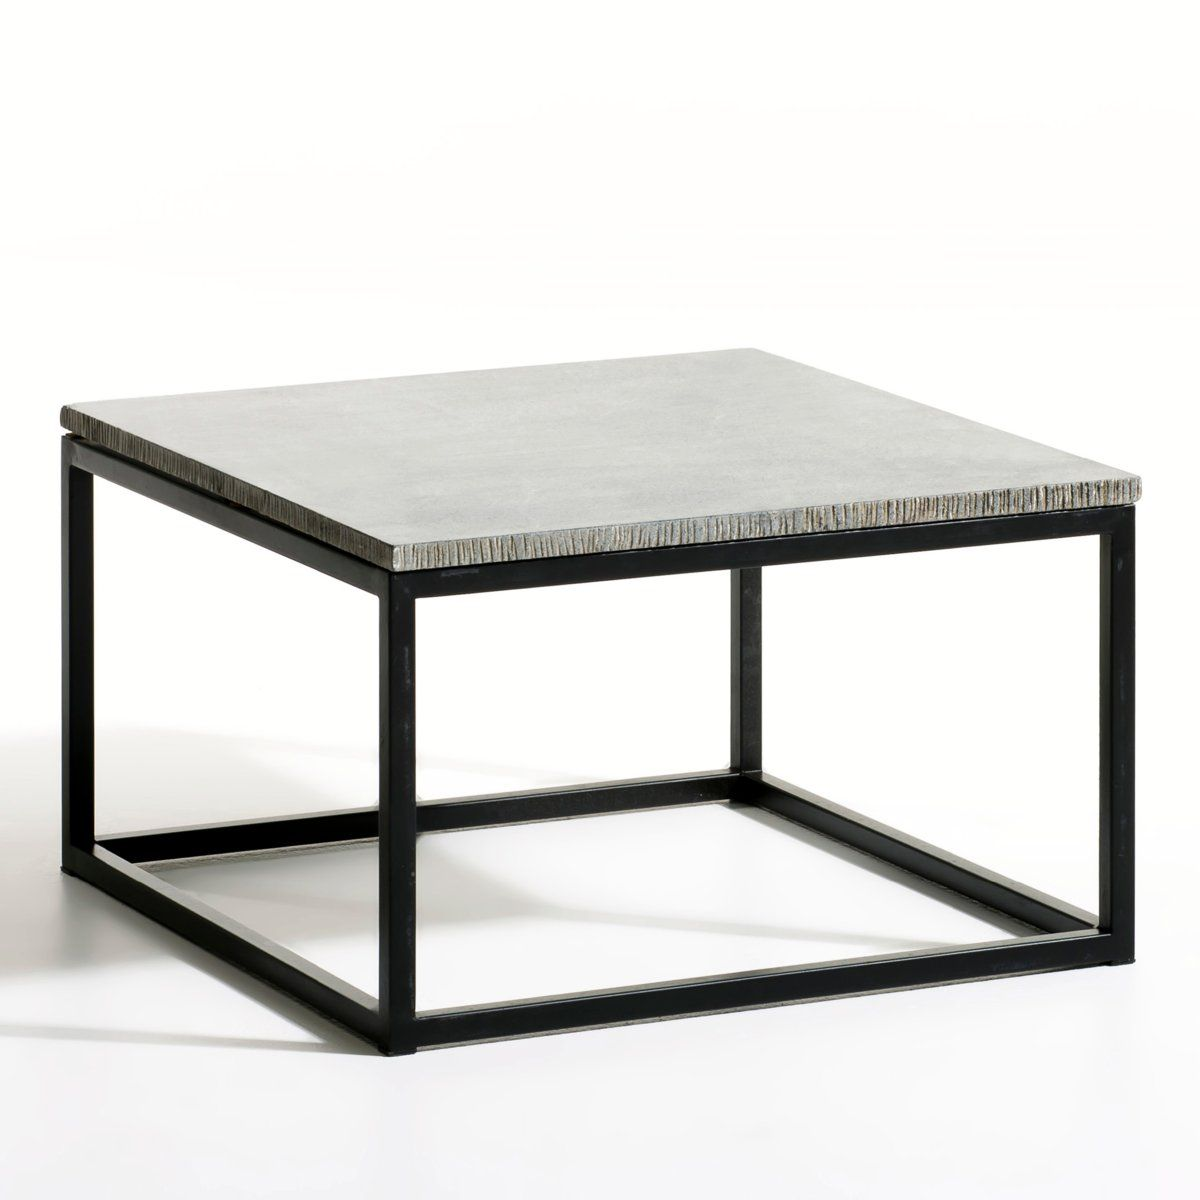 Table Basse Smog Am Pm On Aime Le Prix 159 Euros La Possibilite D En Mettre 2 Table Basse Table Basse Carree Table Basse Salon